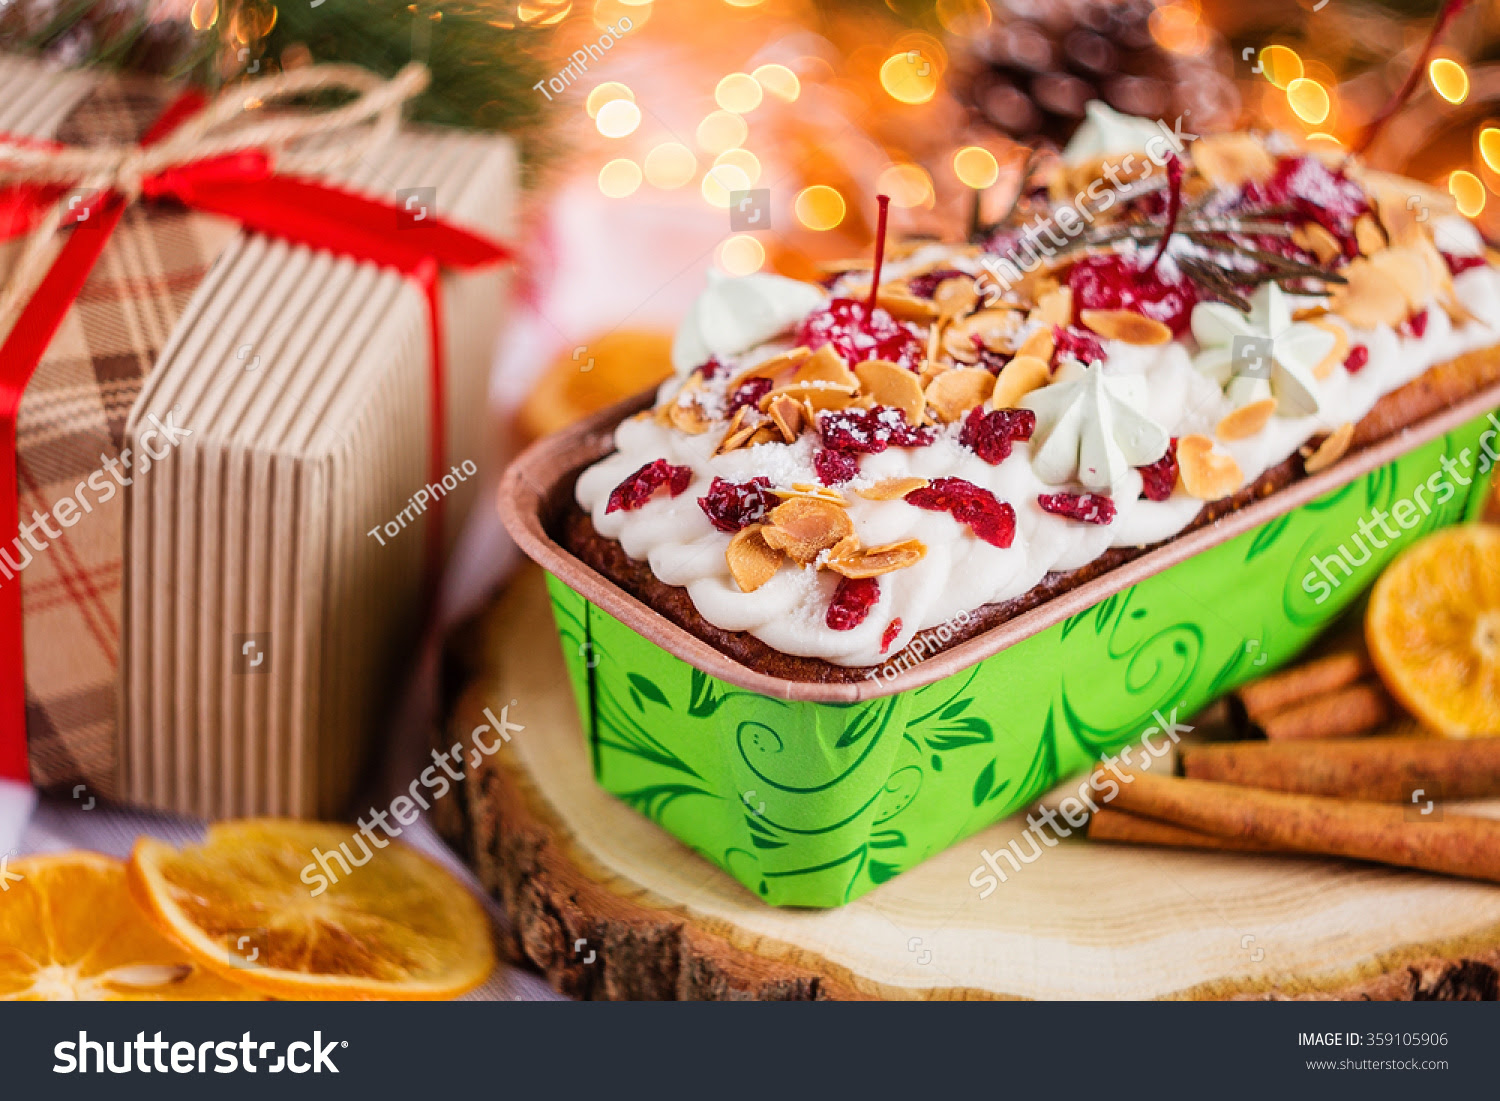 http://www.shutterstock.com/pic-359105906/stock-photo-traditional-christmas-cake-with-holiday-decorations-and-christmas-light-bokeh-background-shallow-focus.html